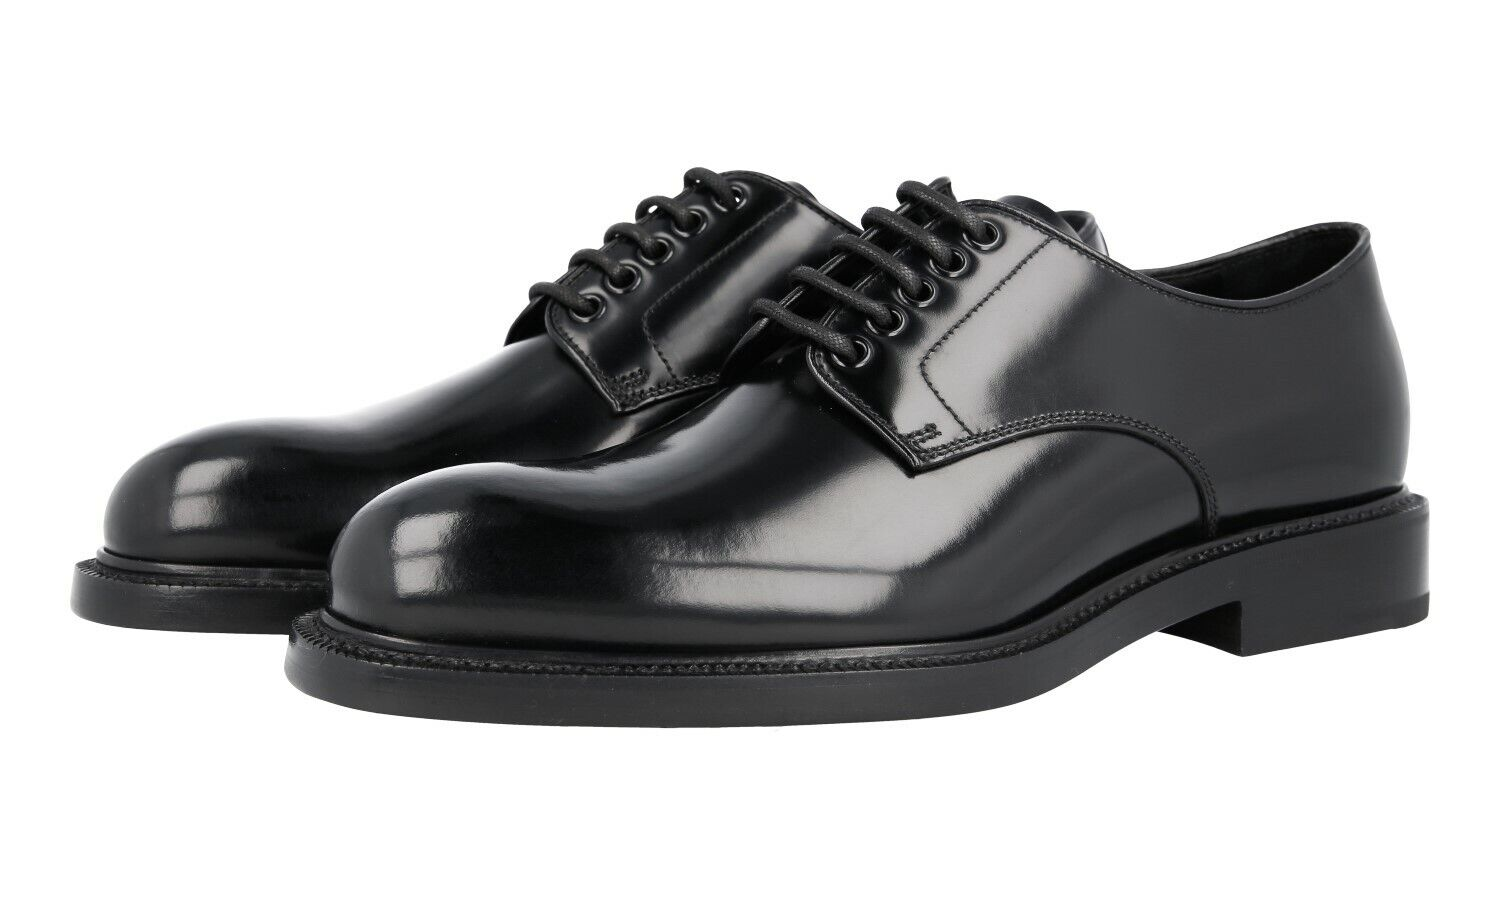 AUTH LUXURY PRADA PLAIN TOE DERBY scarpe 2EA072 nero NEW US 8 EU 41 41,5